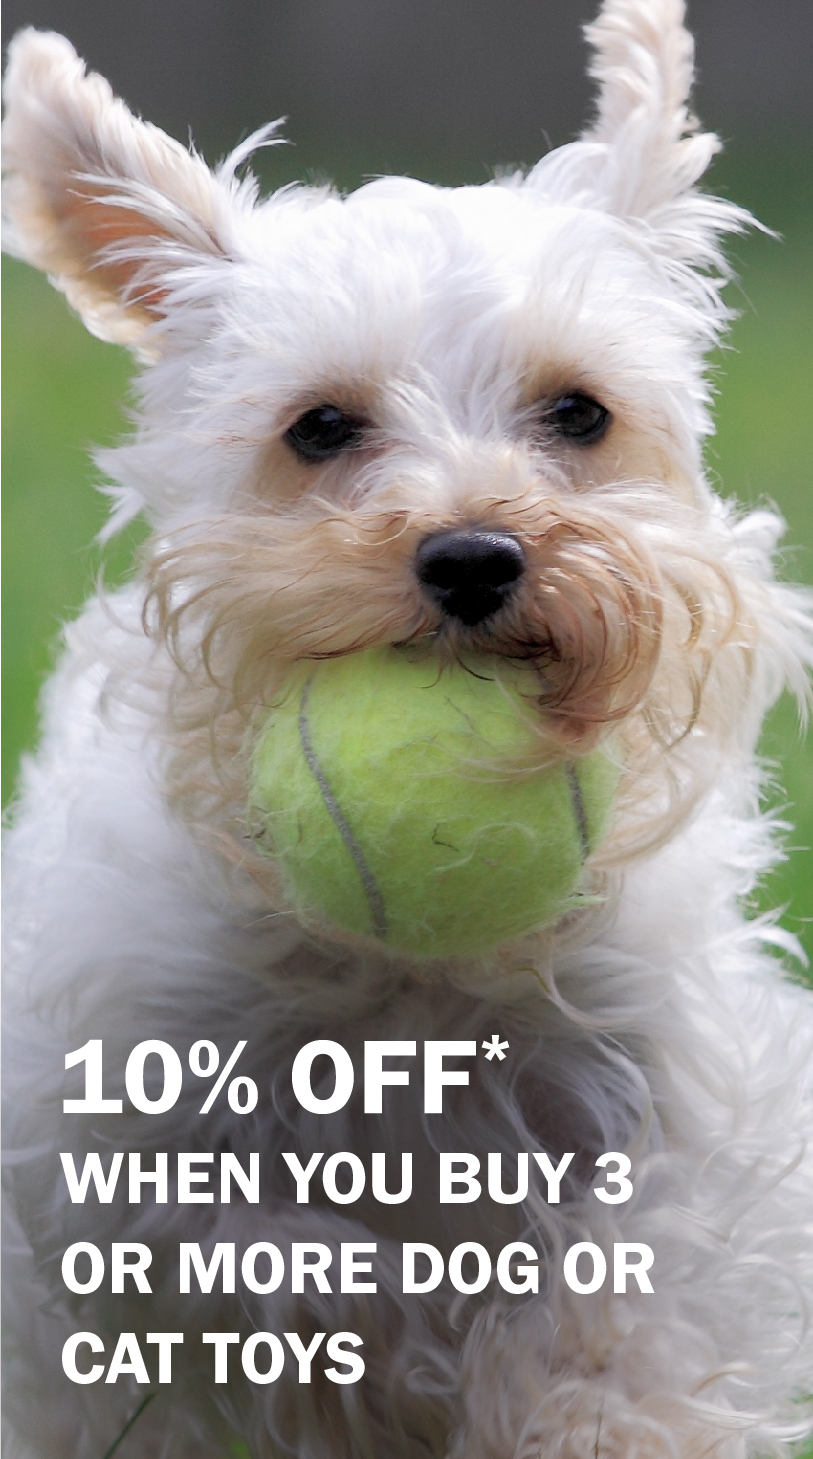 10% off when you buy 3 or more dog or cat toys